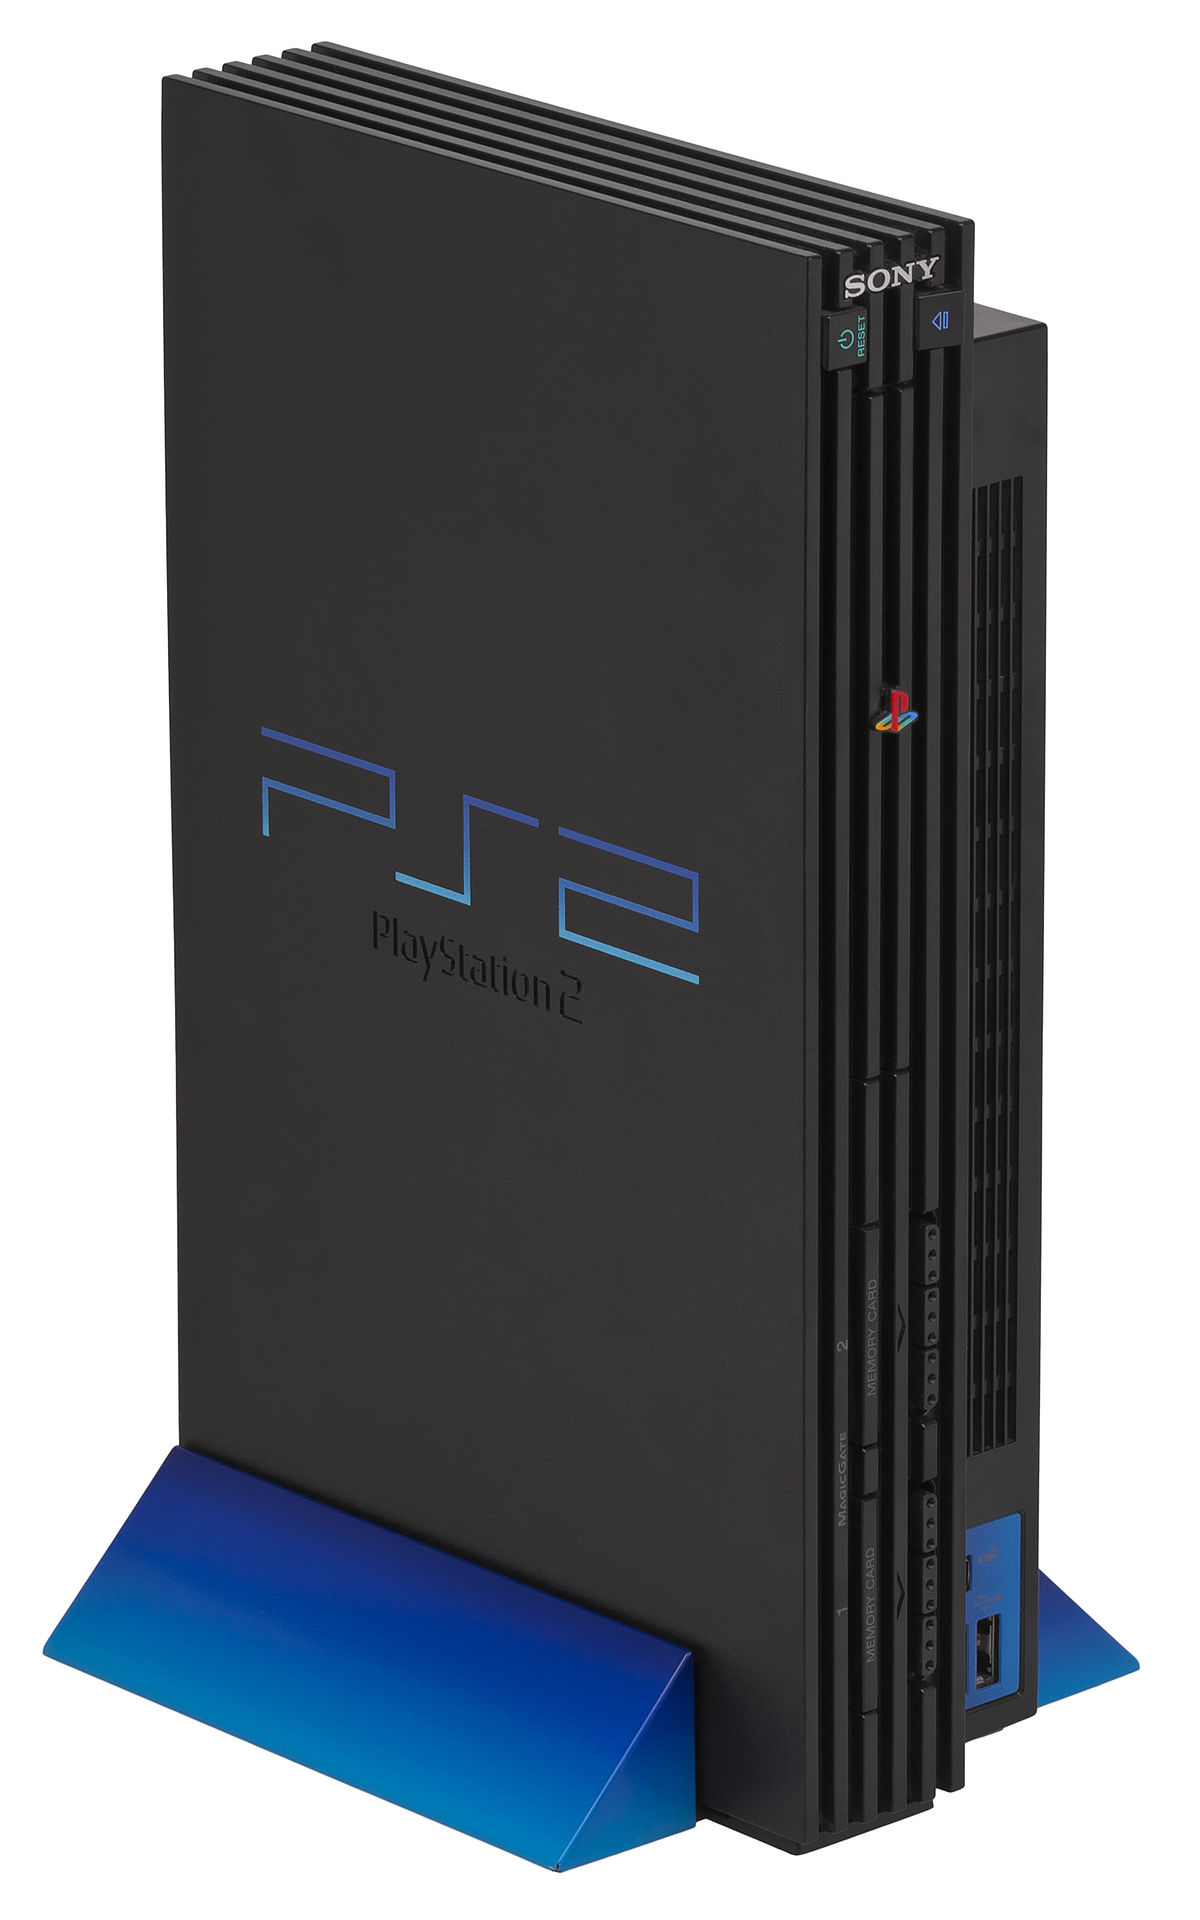 list of playstation 2 games with alternate display modes wikipedia